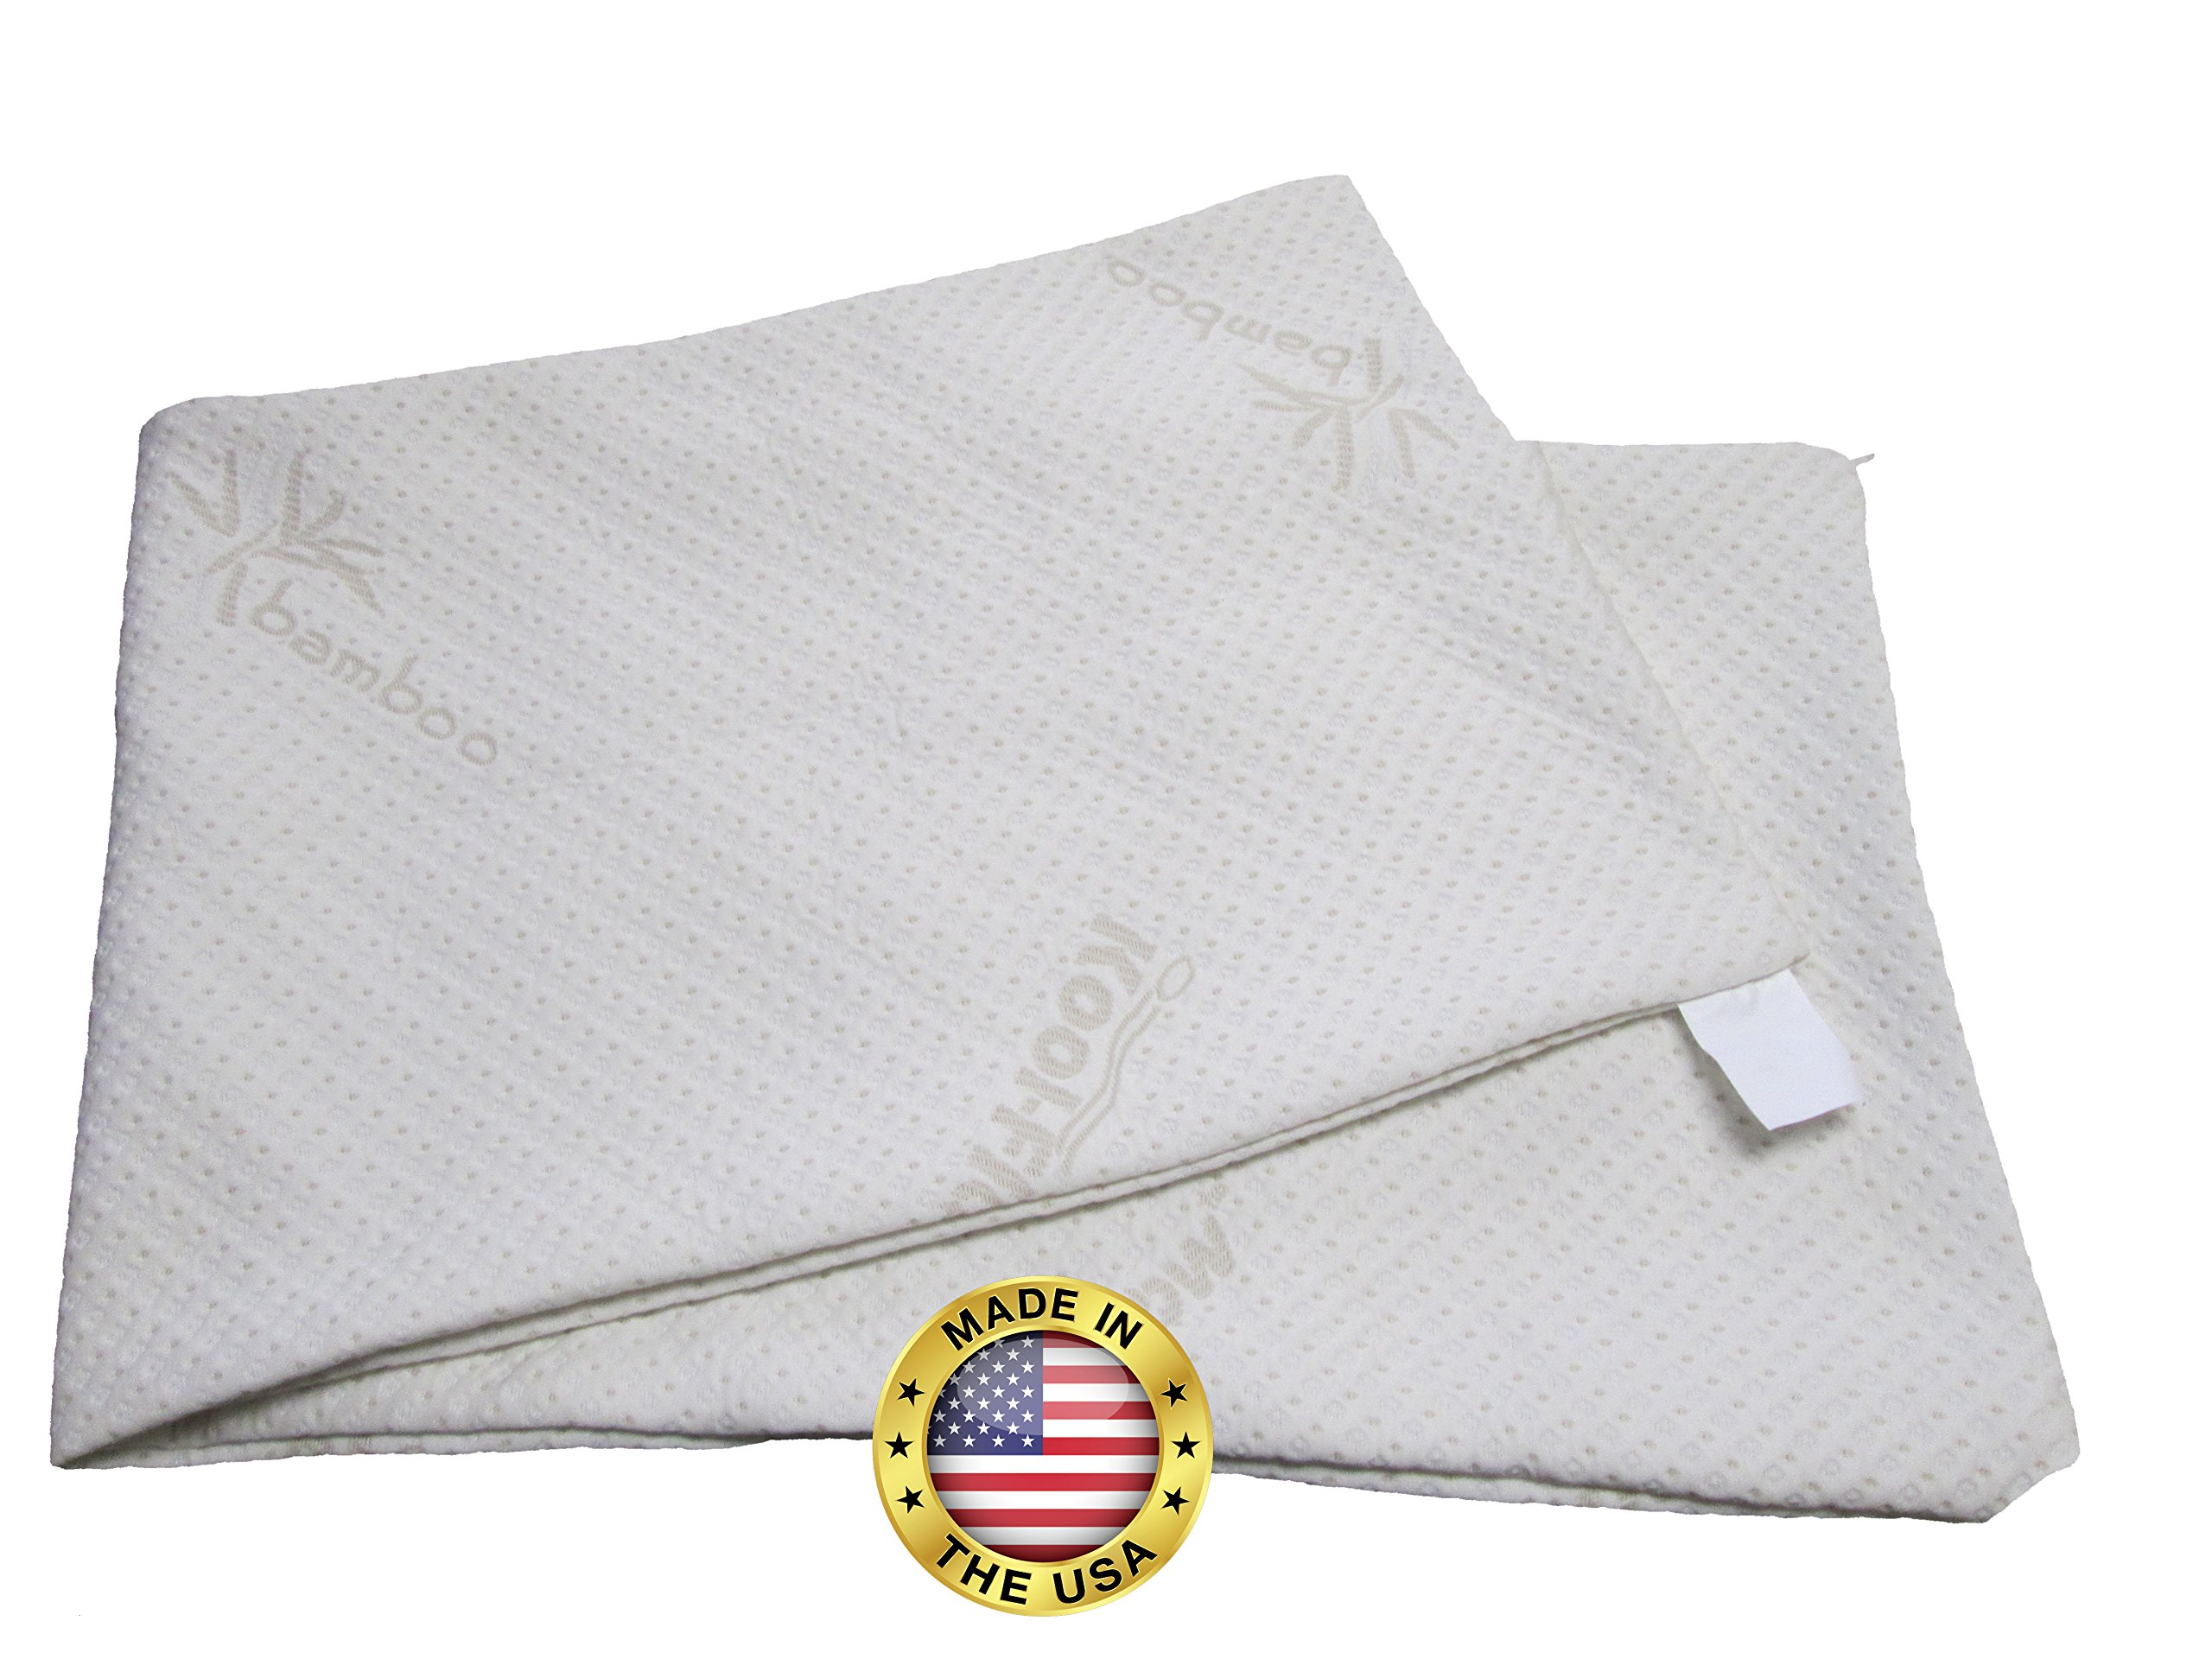 Snuggle-Pedic Zipper Removable Body Pillow Cover Kool-Flow Luxurious Bamboo Material - All USA Made (54 x 20 inch)